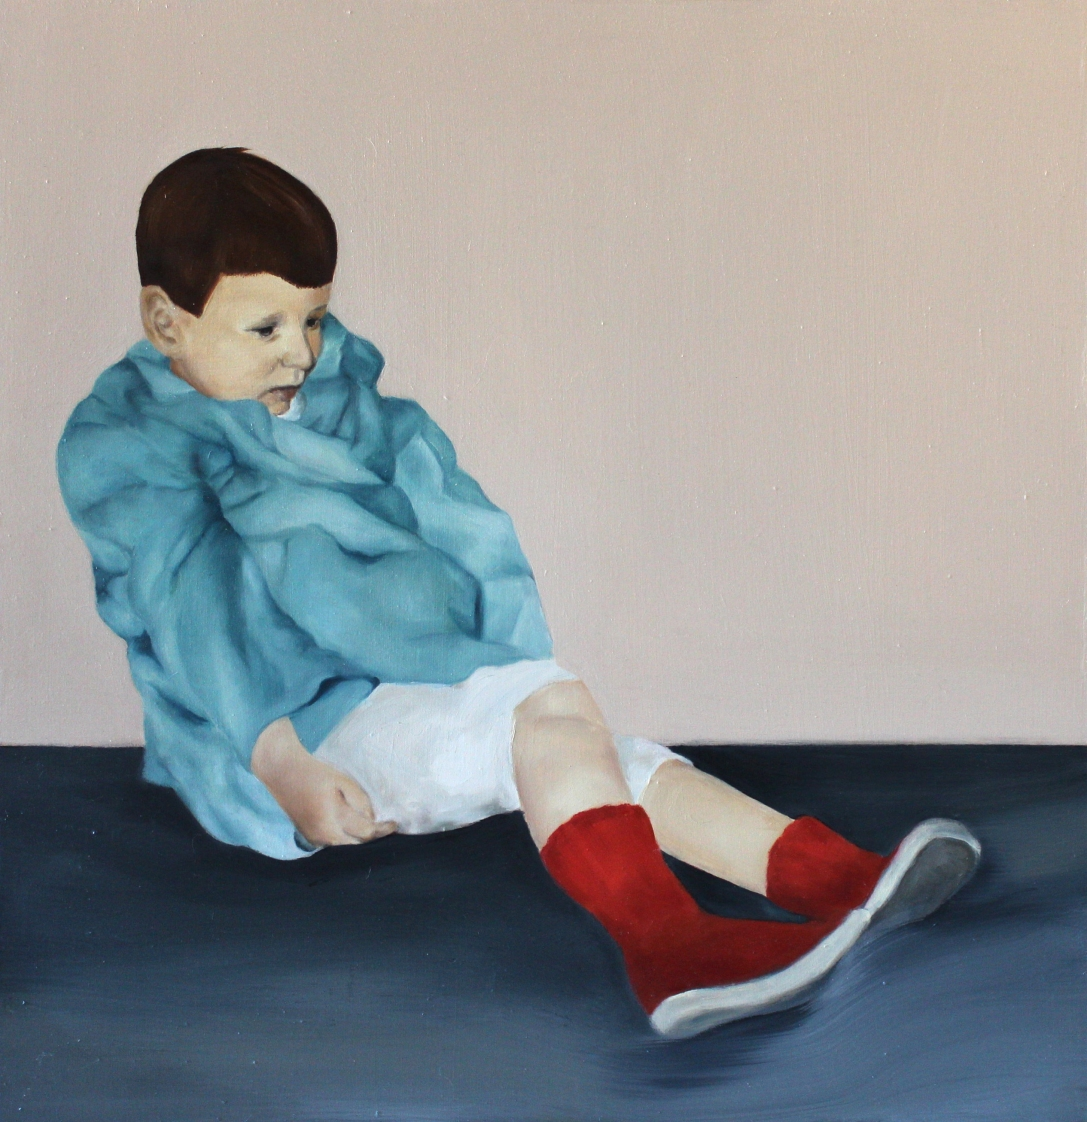 Play, 2015, oil on mdf-board57 x 55 cm